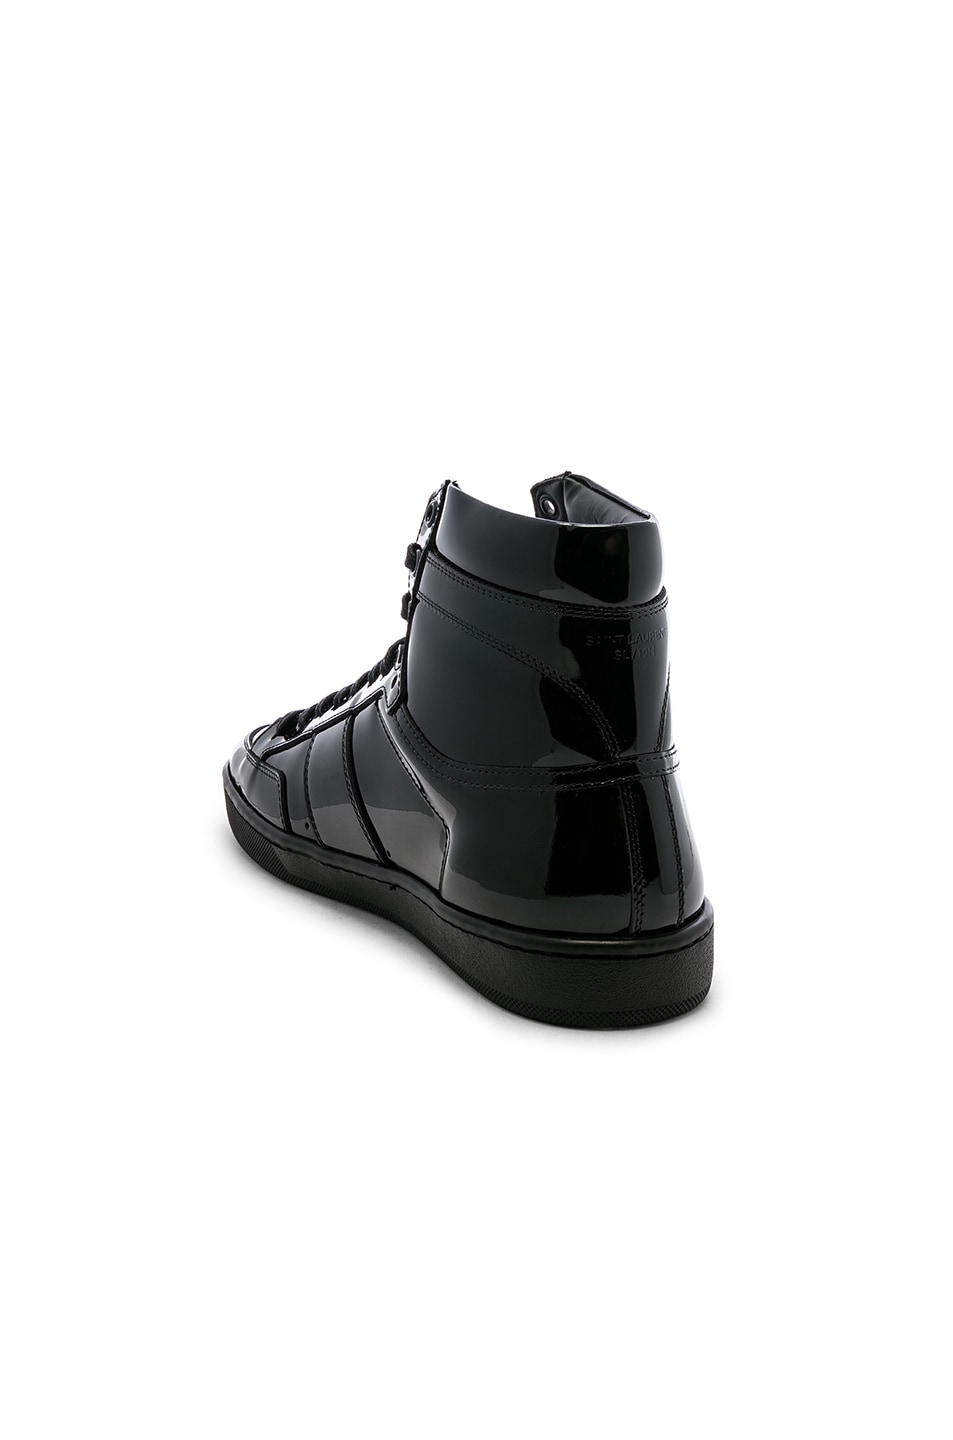 Image 3 of Saint Laurent Signature Court Classic SL/10H Leather Hi-Top Sneaker in Black & Black